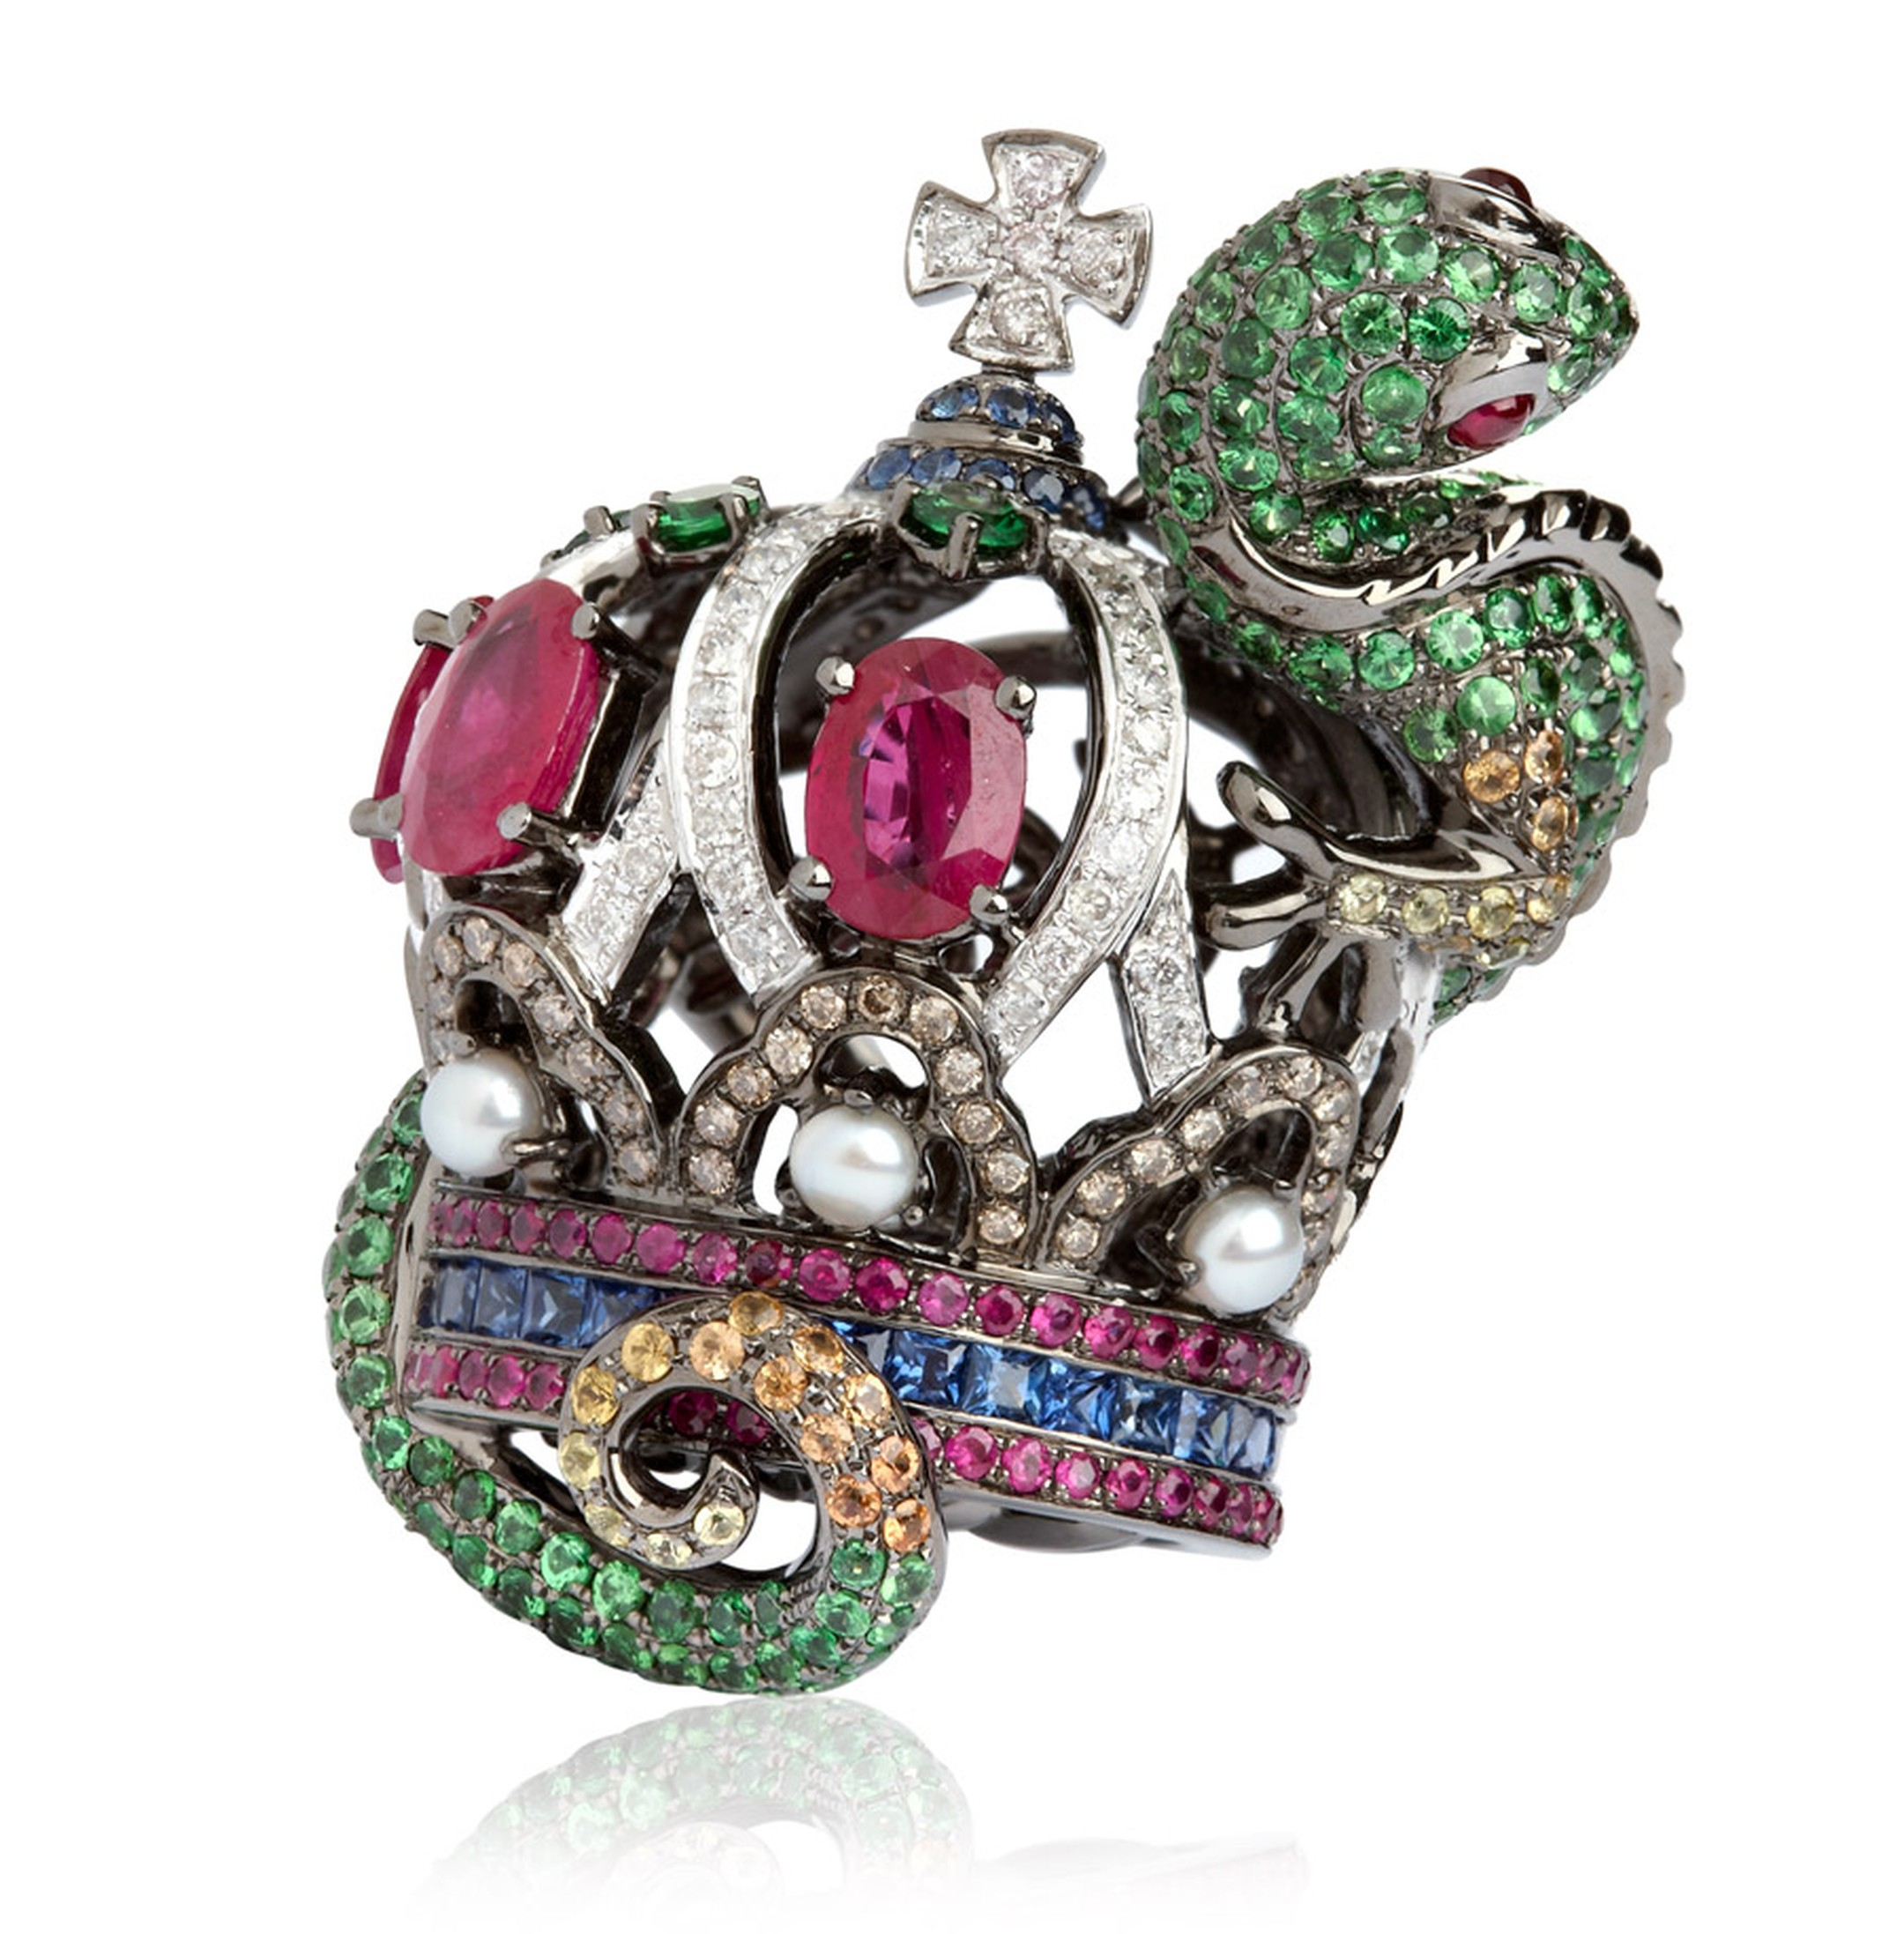 Wendy-Yue-Fantasie-Jubilee-18ct-white-gold,diamond,sapphire,garnet-and-ruby-Lizard-ring-by-Wendy-Yue-for-Annoushka_02a.jpg